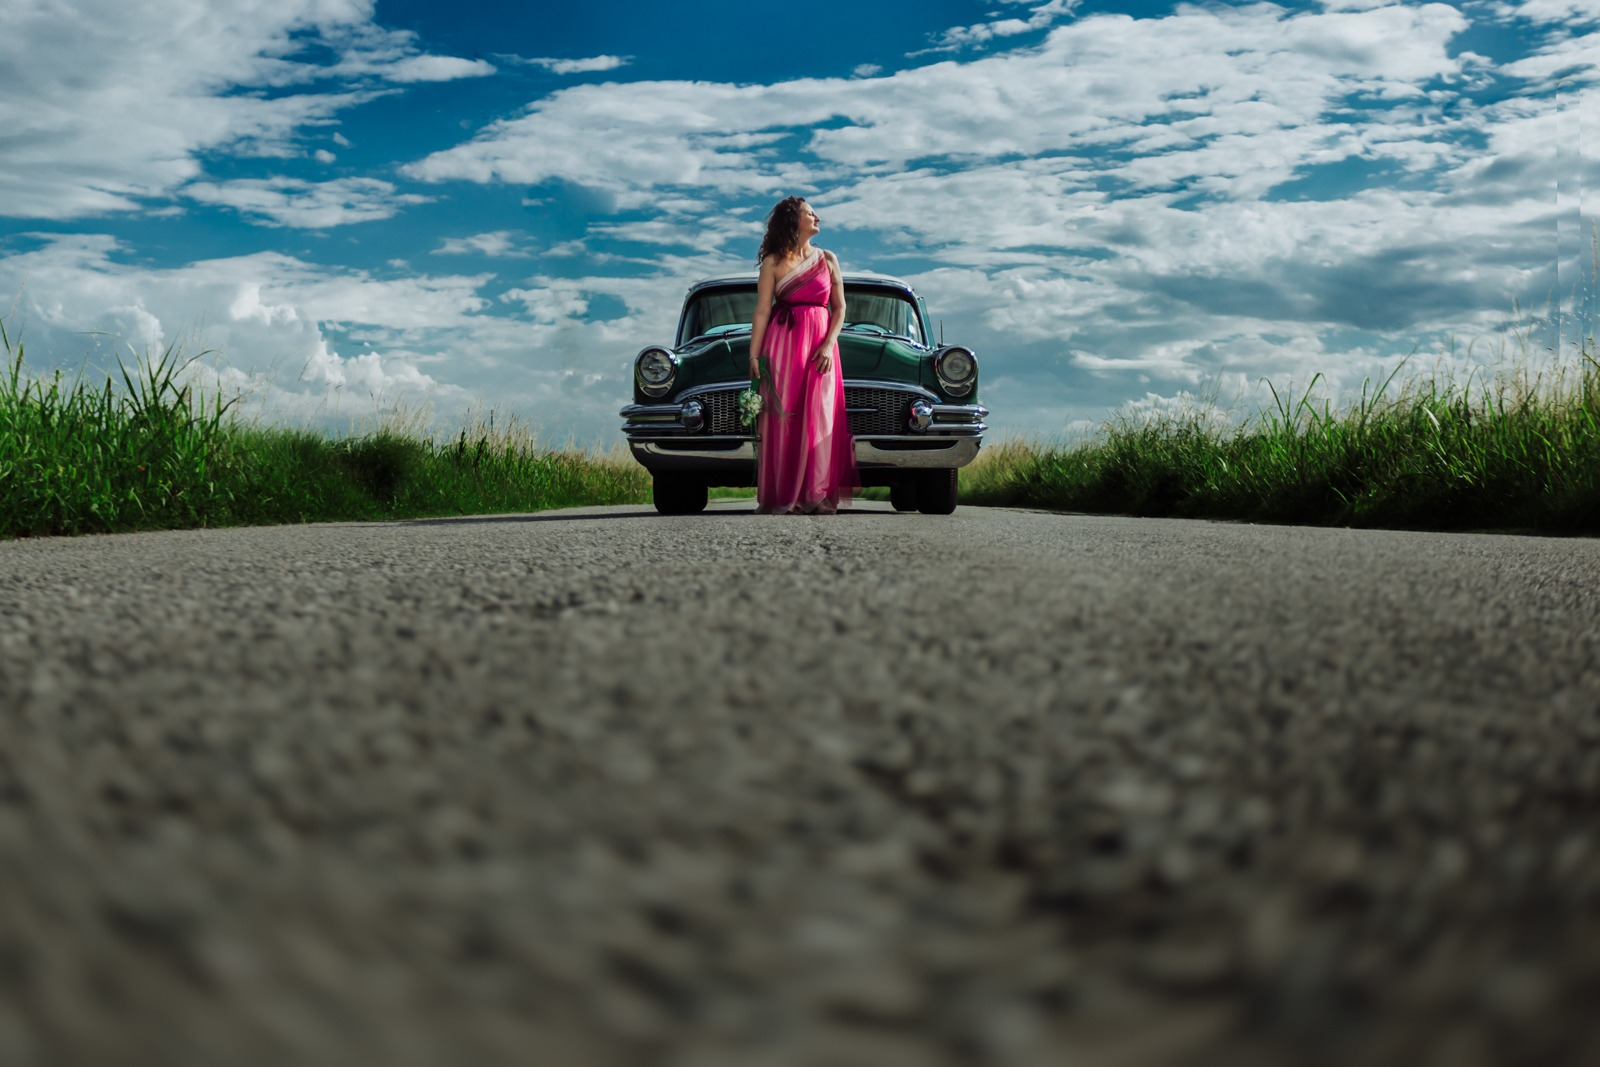 wedding-italy-bride-sky-clouds-old car-oldcar-street-countryside-dress-field